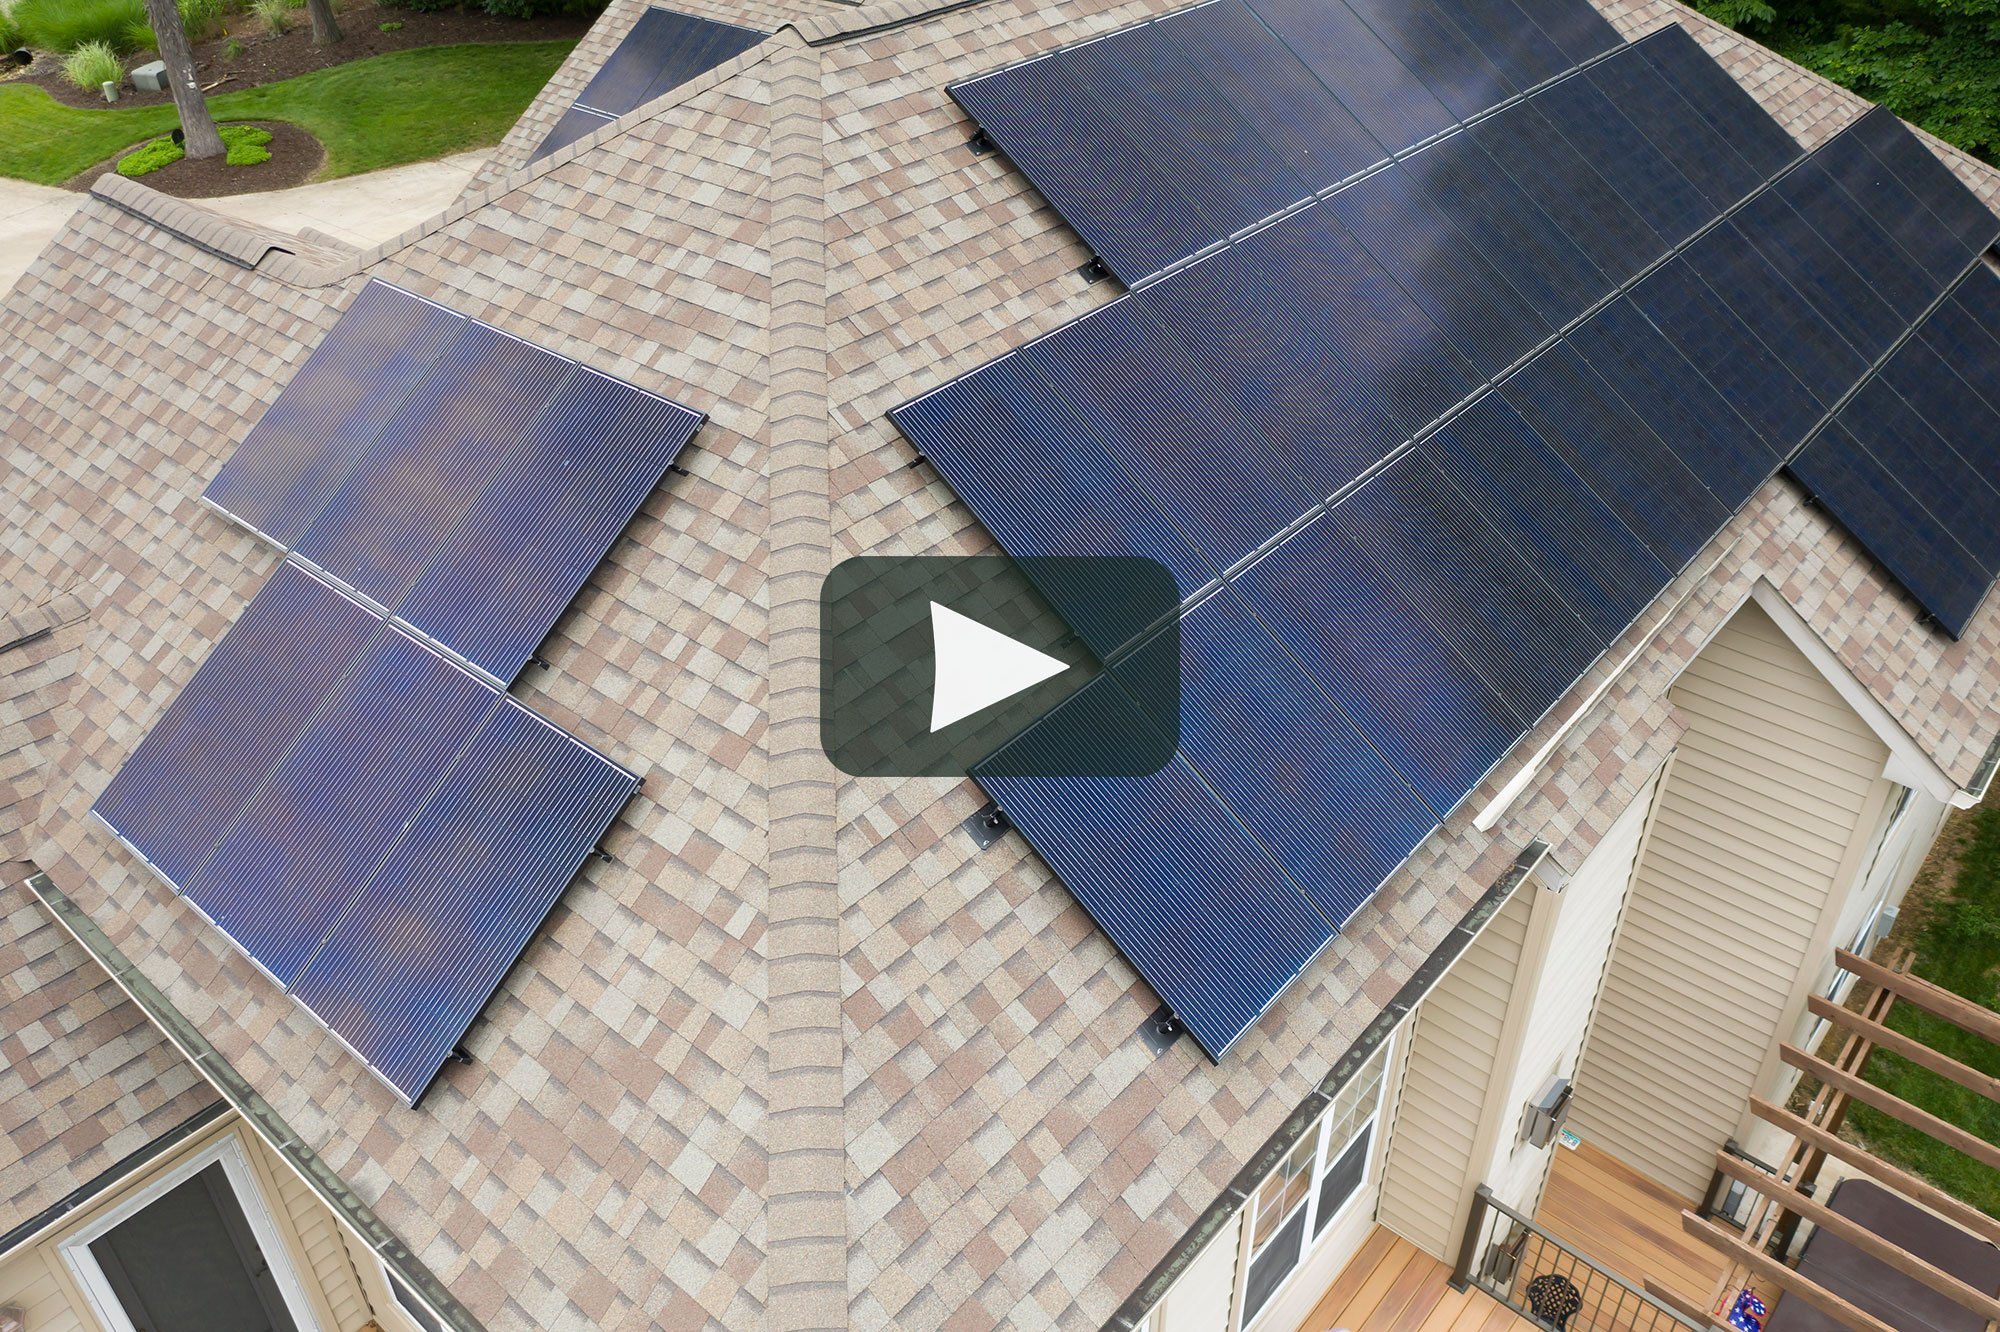 Solar Sam Professional Solar Panel Installation in Missouri Illinois Residential Home Commercial Business Office Agricultural Farm Green Energy Panels Video Drone Flyover Roof